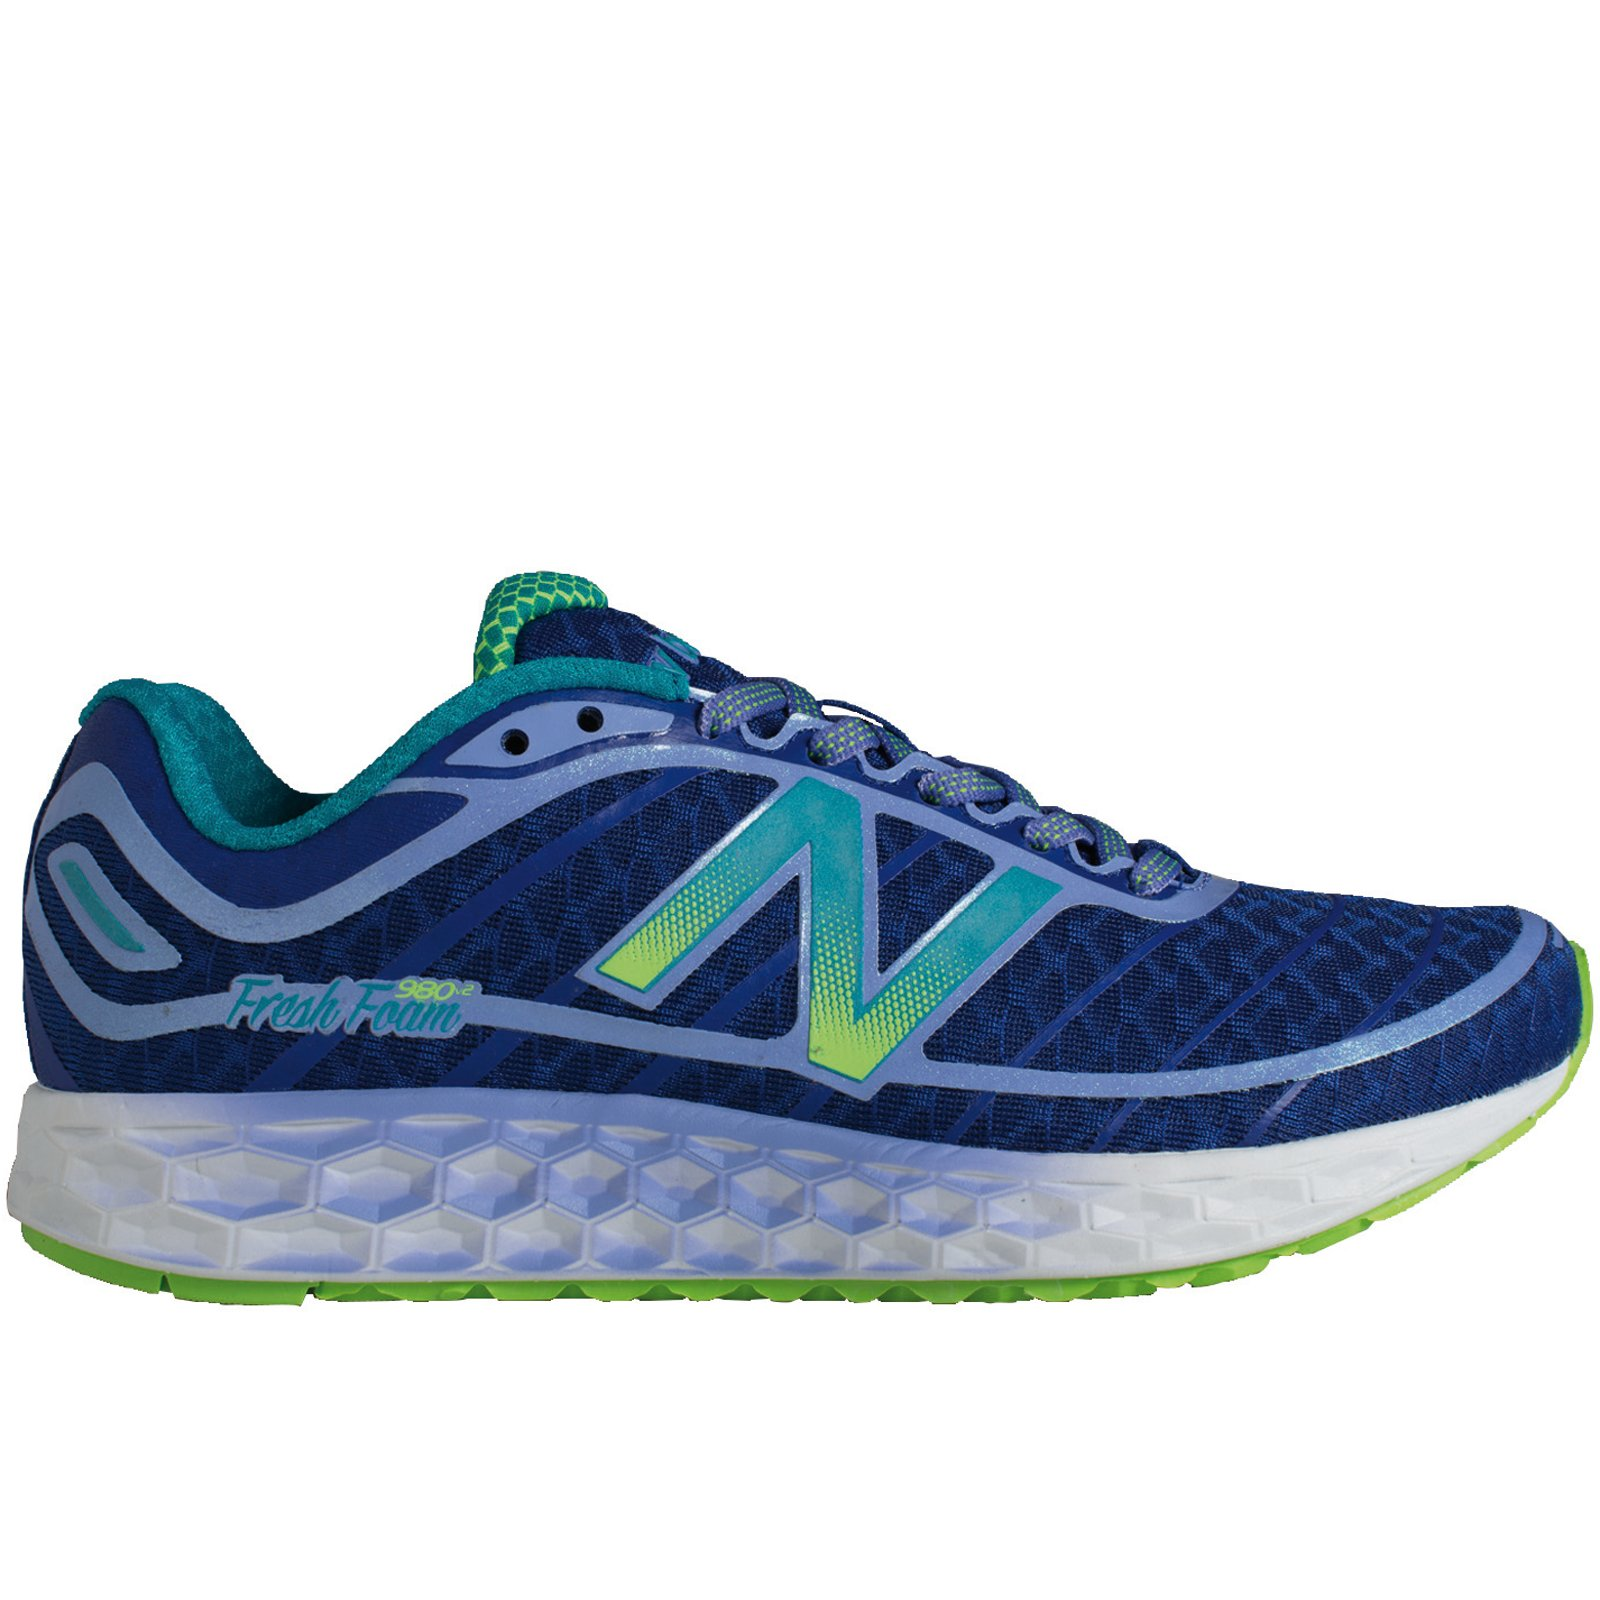 New Balance Lady Boracay 980 in Blue/Green